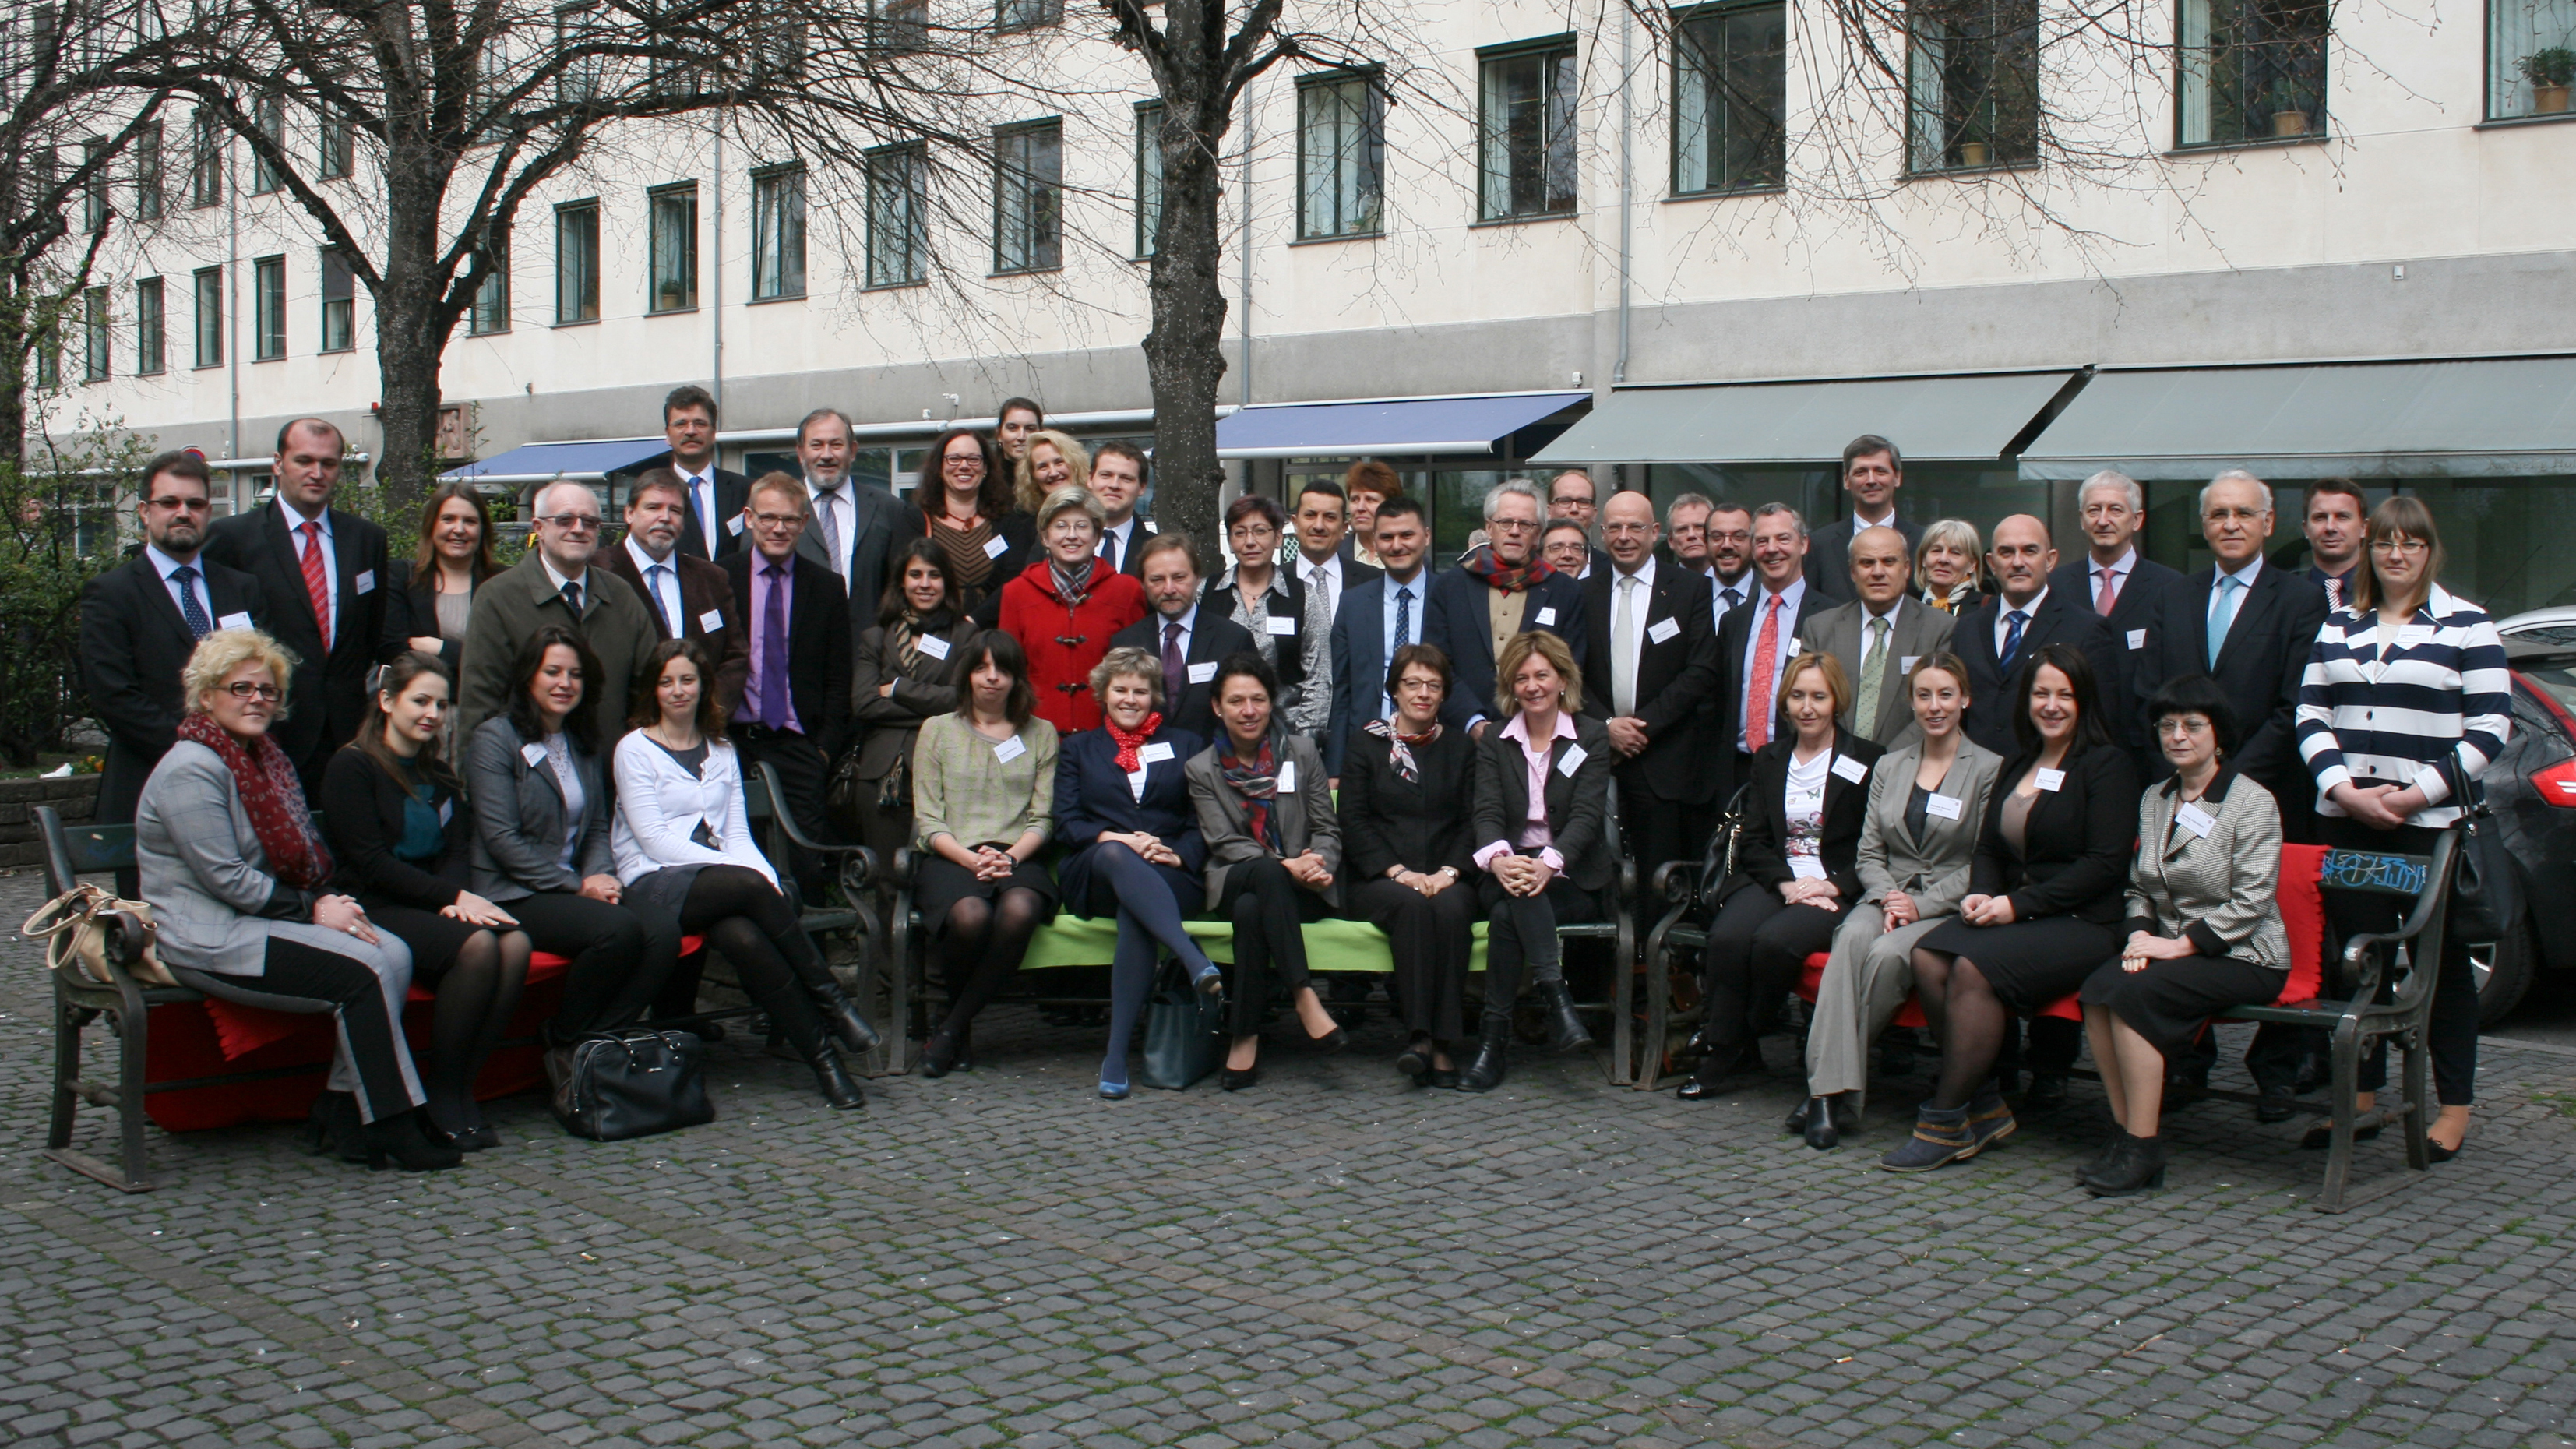 Liaison officers of the Supreme Audit Institutions (SAIs) of the 28 EU Member States and the European Court of Auditors (ECA) met in Copenhagen, Denmark on 10 - 11 April